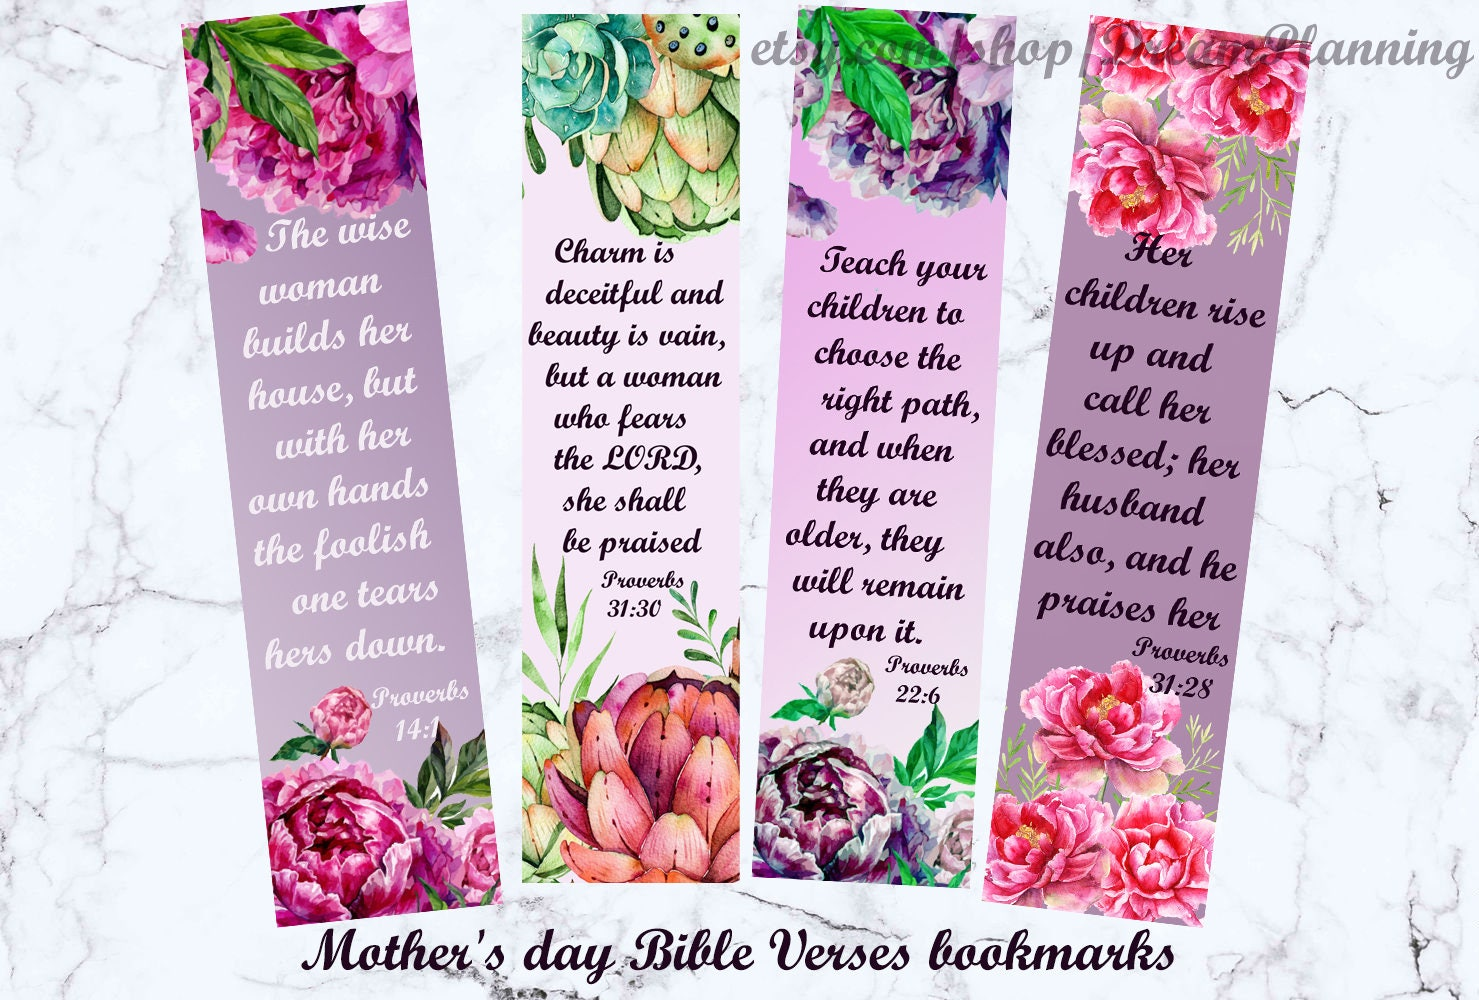 mother's day bible verses bookmarks christian mother day | etsy